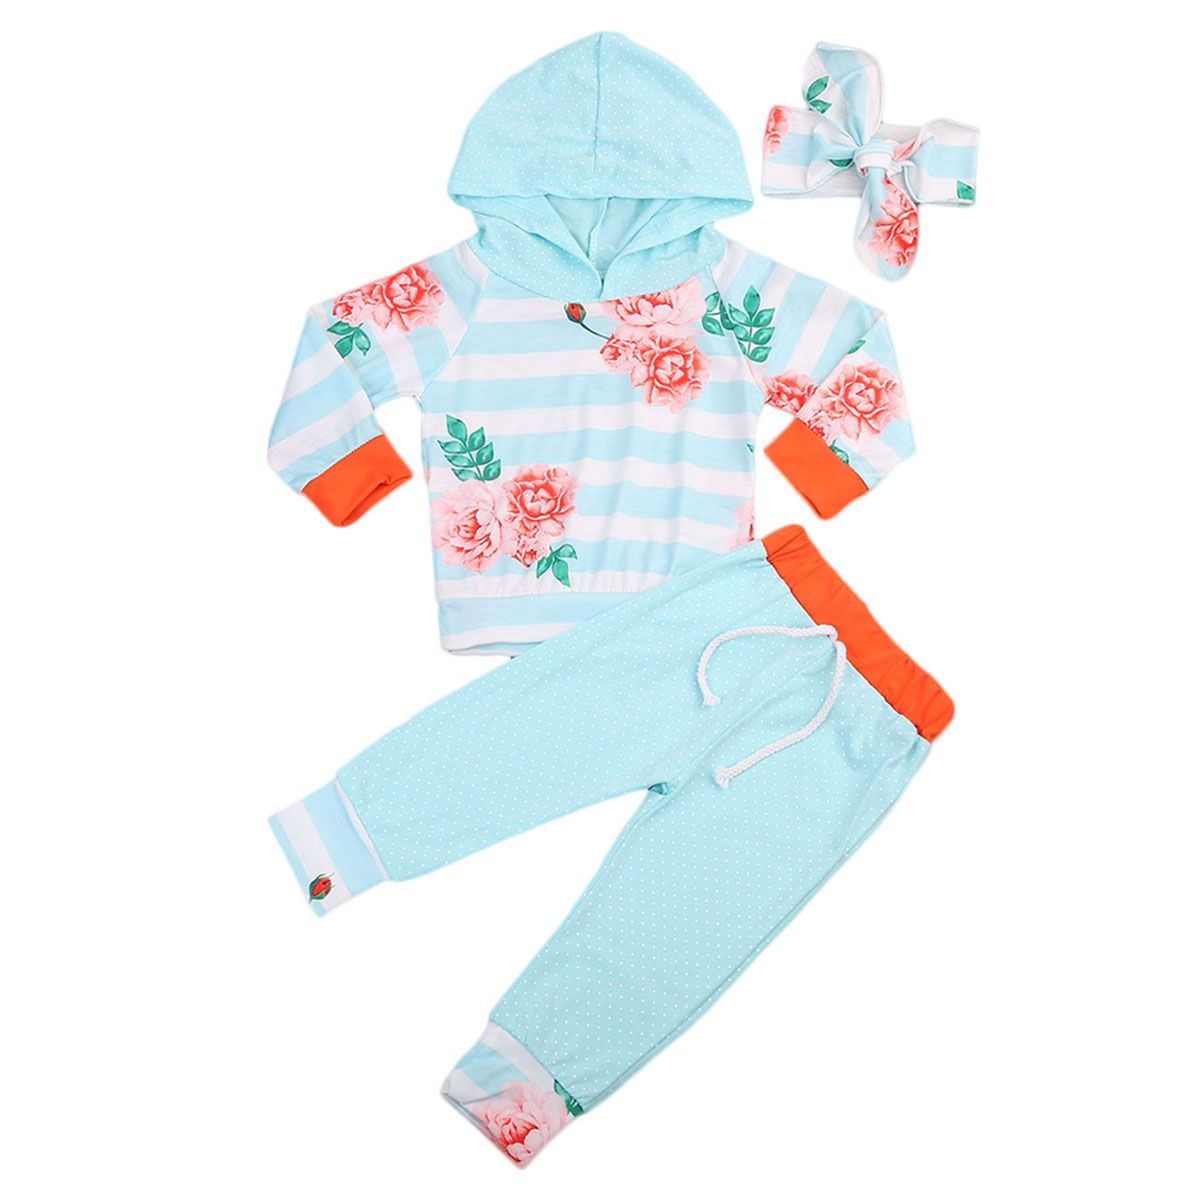 3PCS Newborn Baby Girls Clothes Floral Long Sleeve Tops Hooded Long Pants Outfits Baby Clothing Set